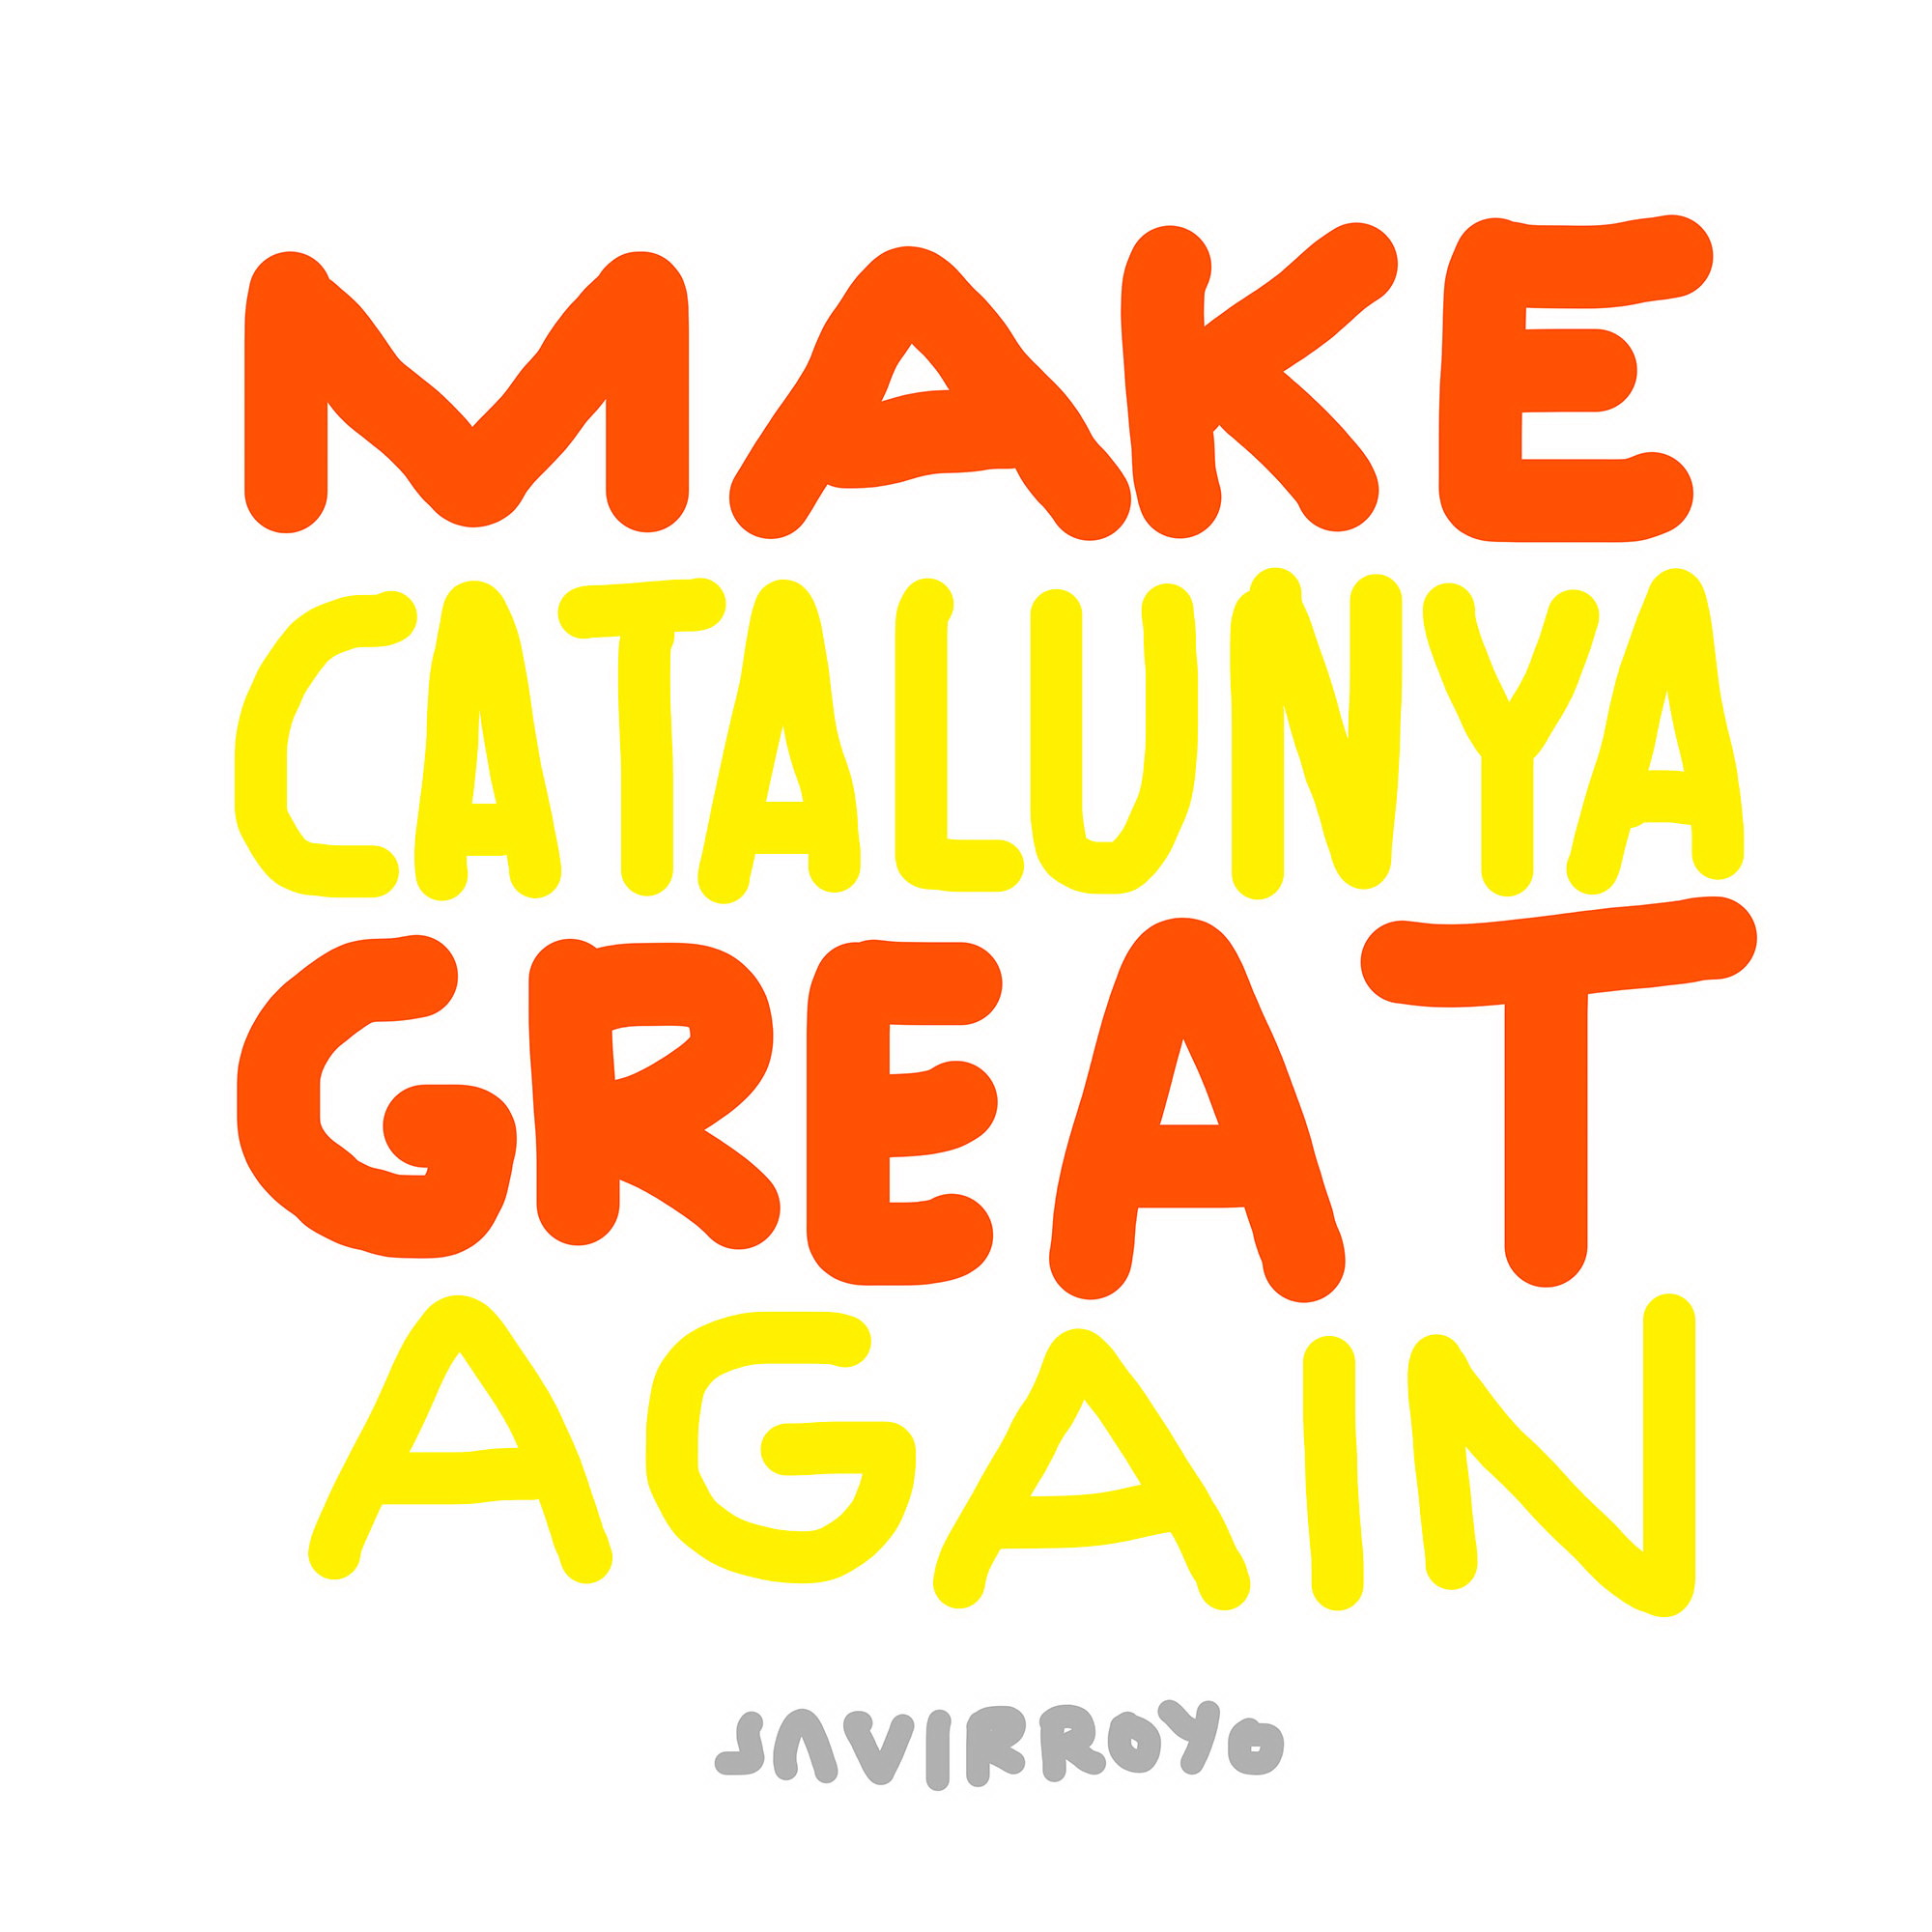 make-catalunya-great-again